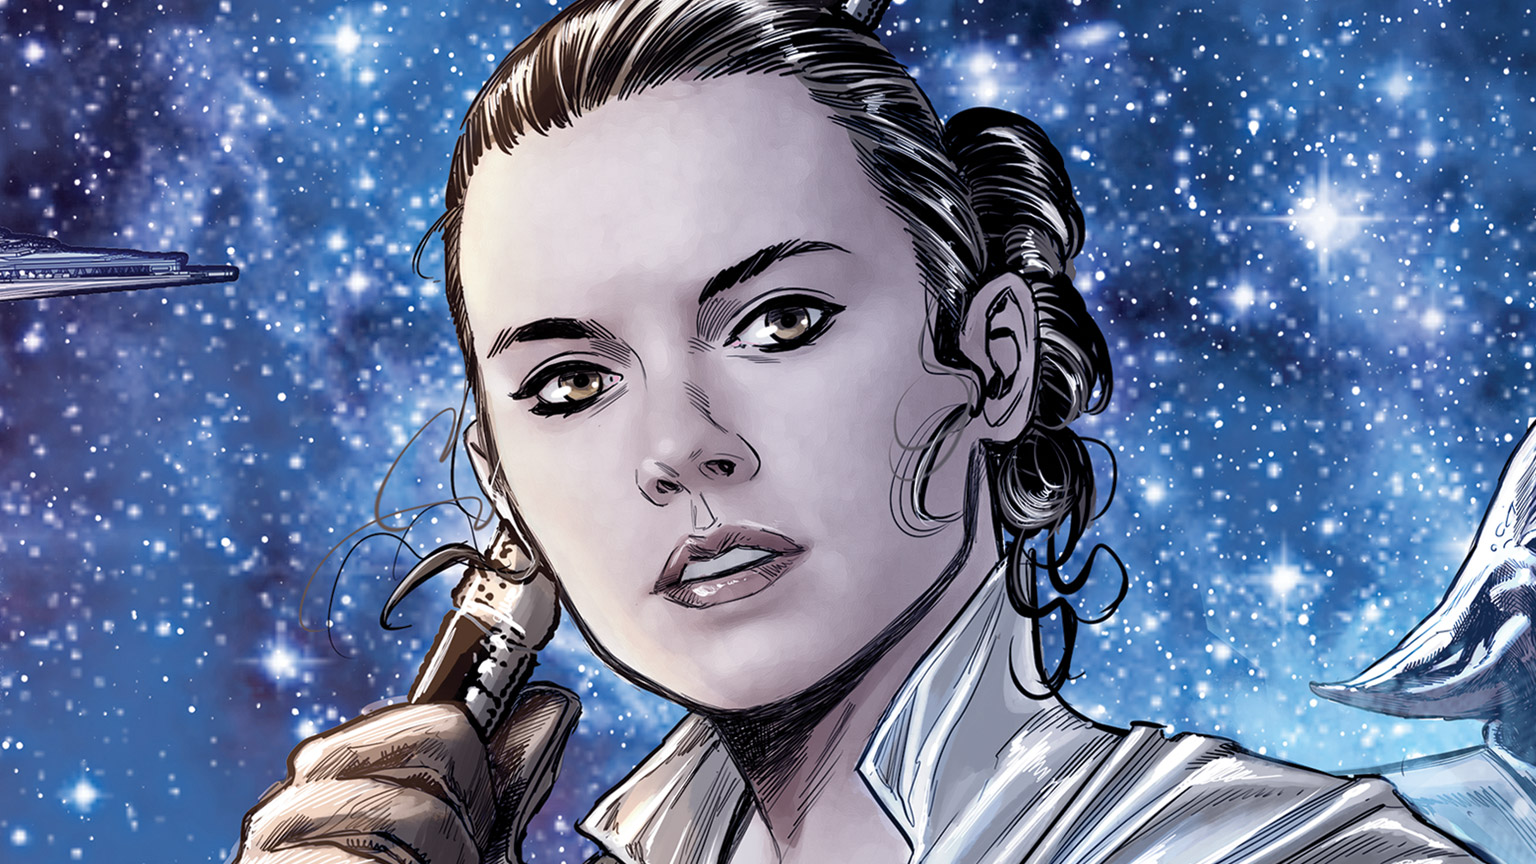 Rey in Marvel's Journey to Star Wars: The Rise of Skywalker - Allegiance #4